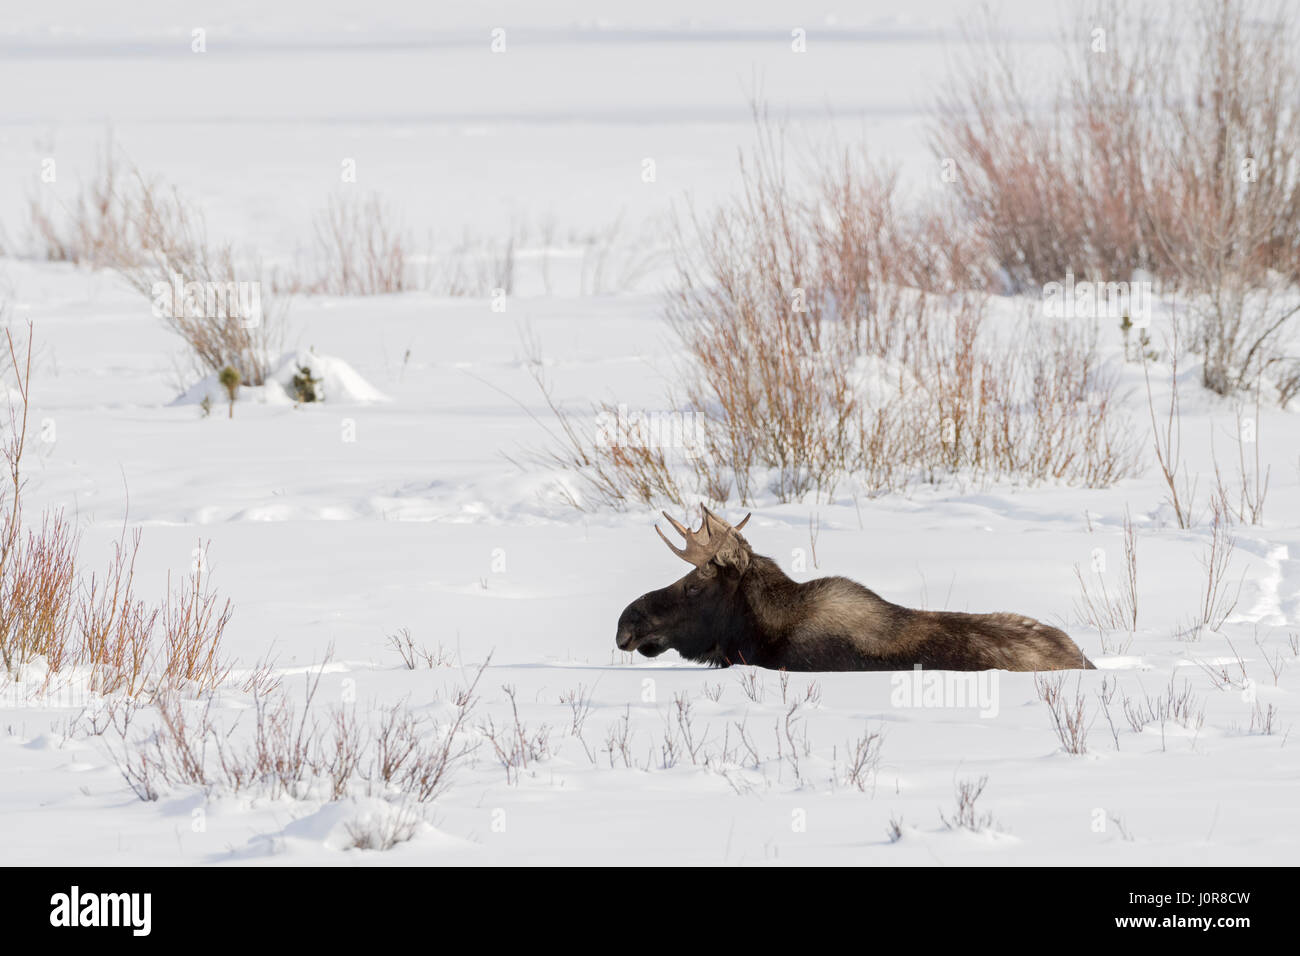 Moose / Elch ( Alces alces ), young bull, resting, lying, ruminating in snow, winter, Yellowstone NP, USA. - Stock Image